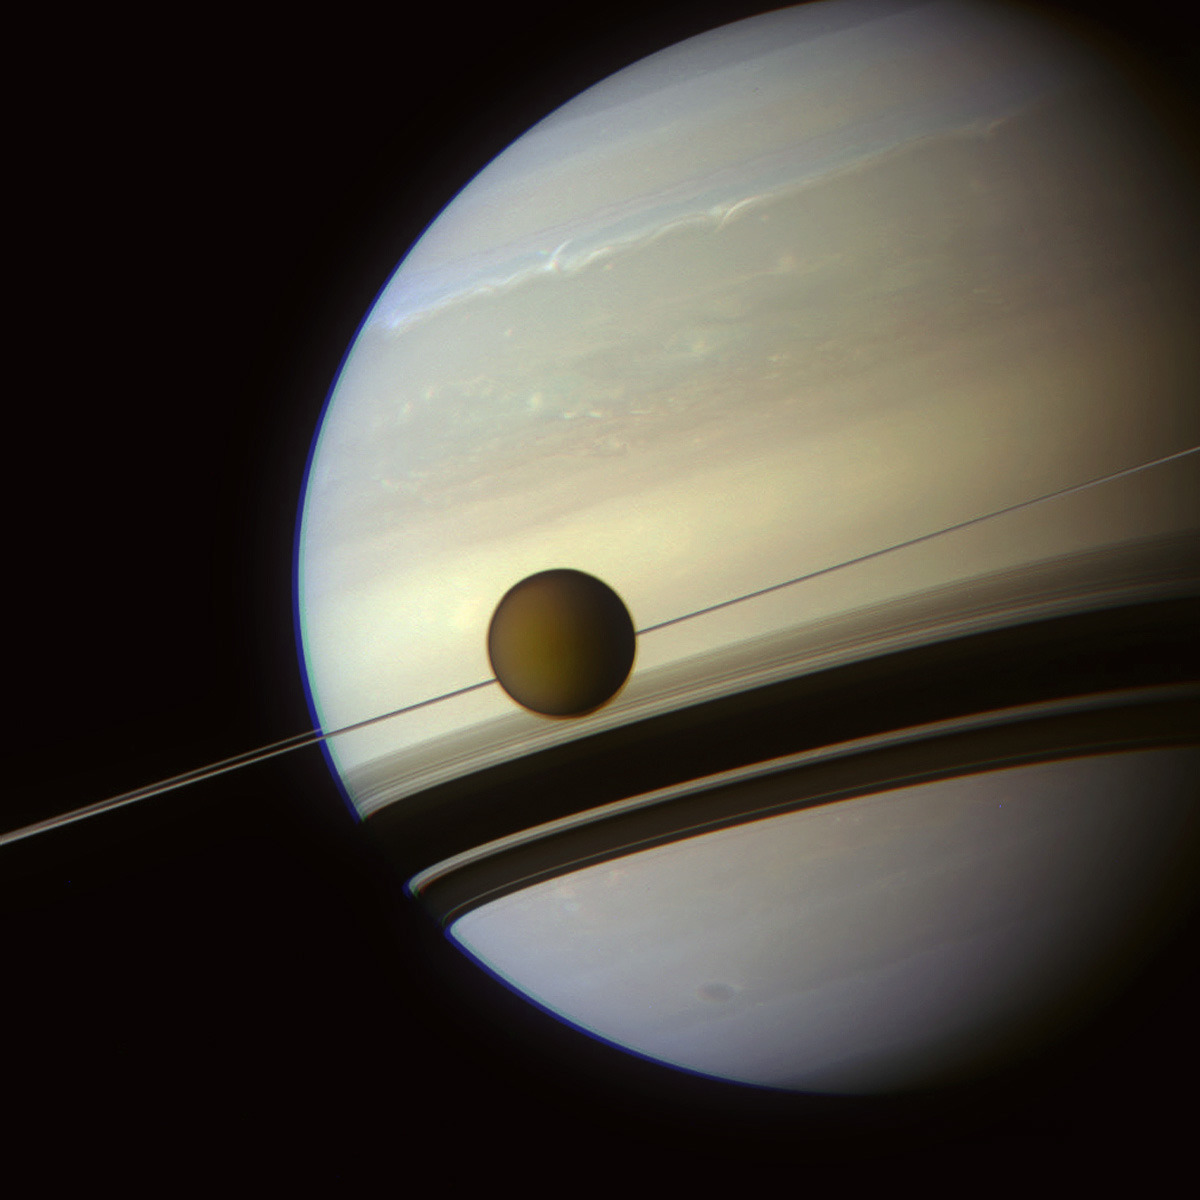 astrotastic:  In the Shadows of Saturn's Rings Titan and Saturn, seen when the Cassini spacecraft passed by Titan at a distance of 700,000 km on 6 May 2012.